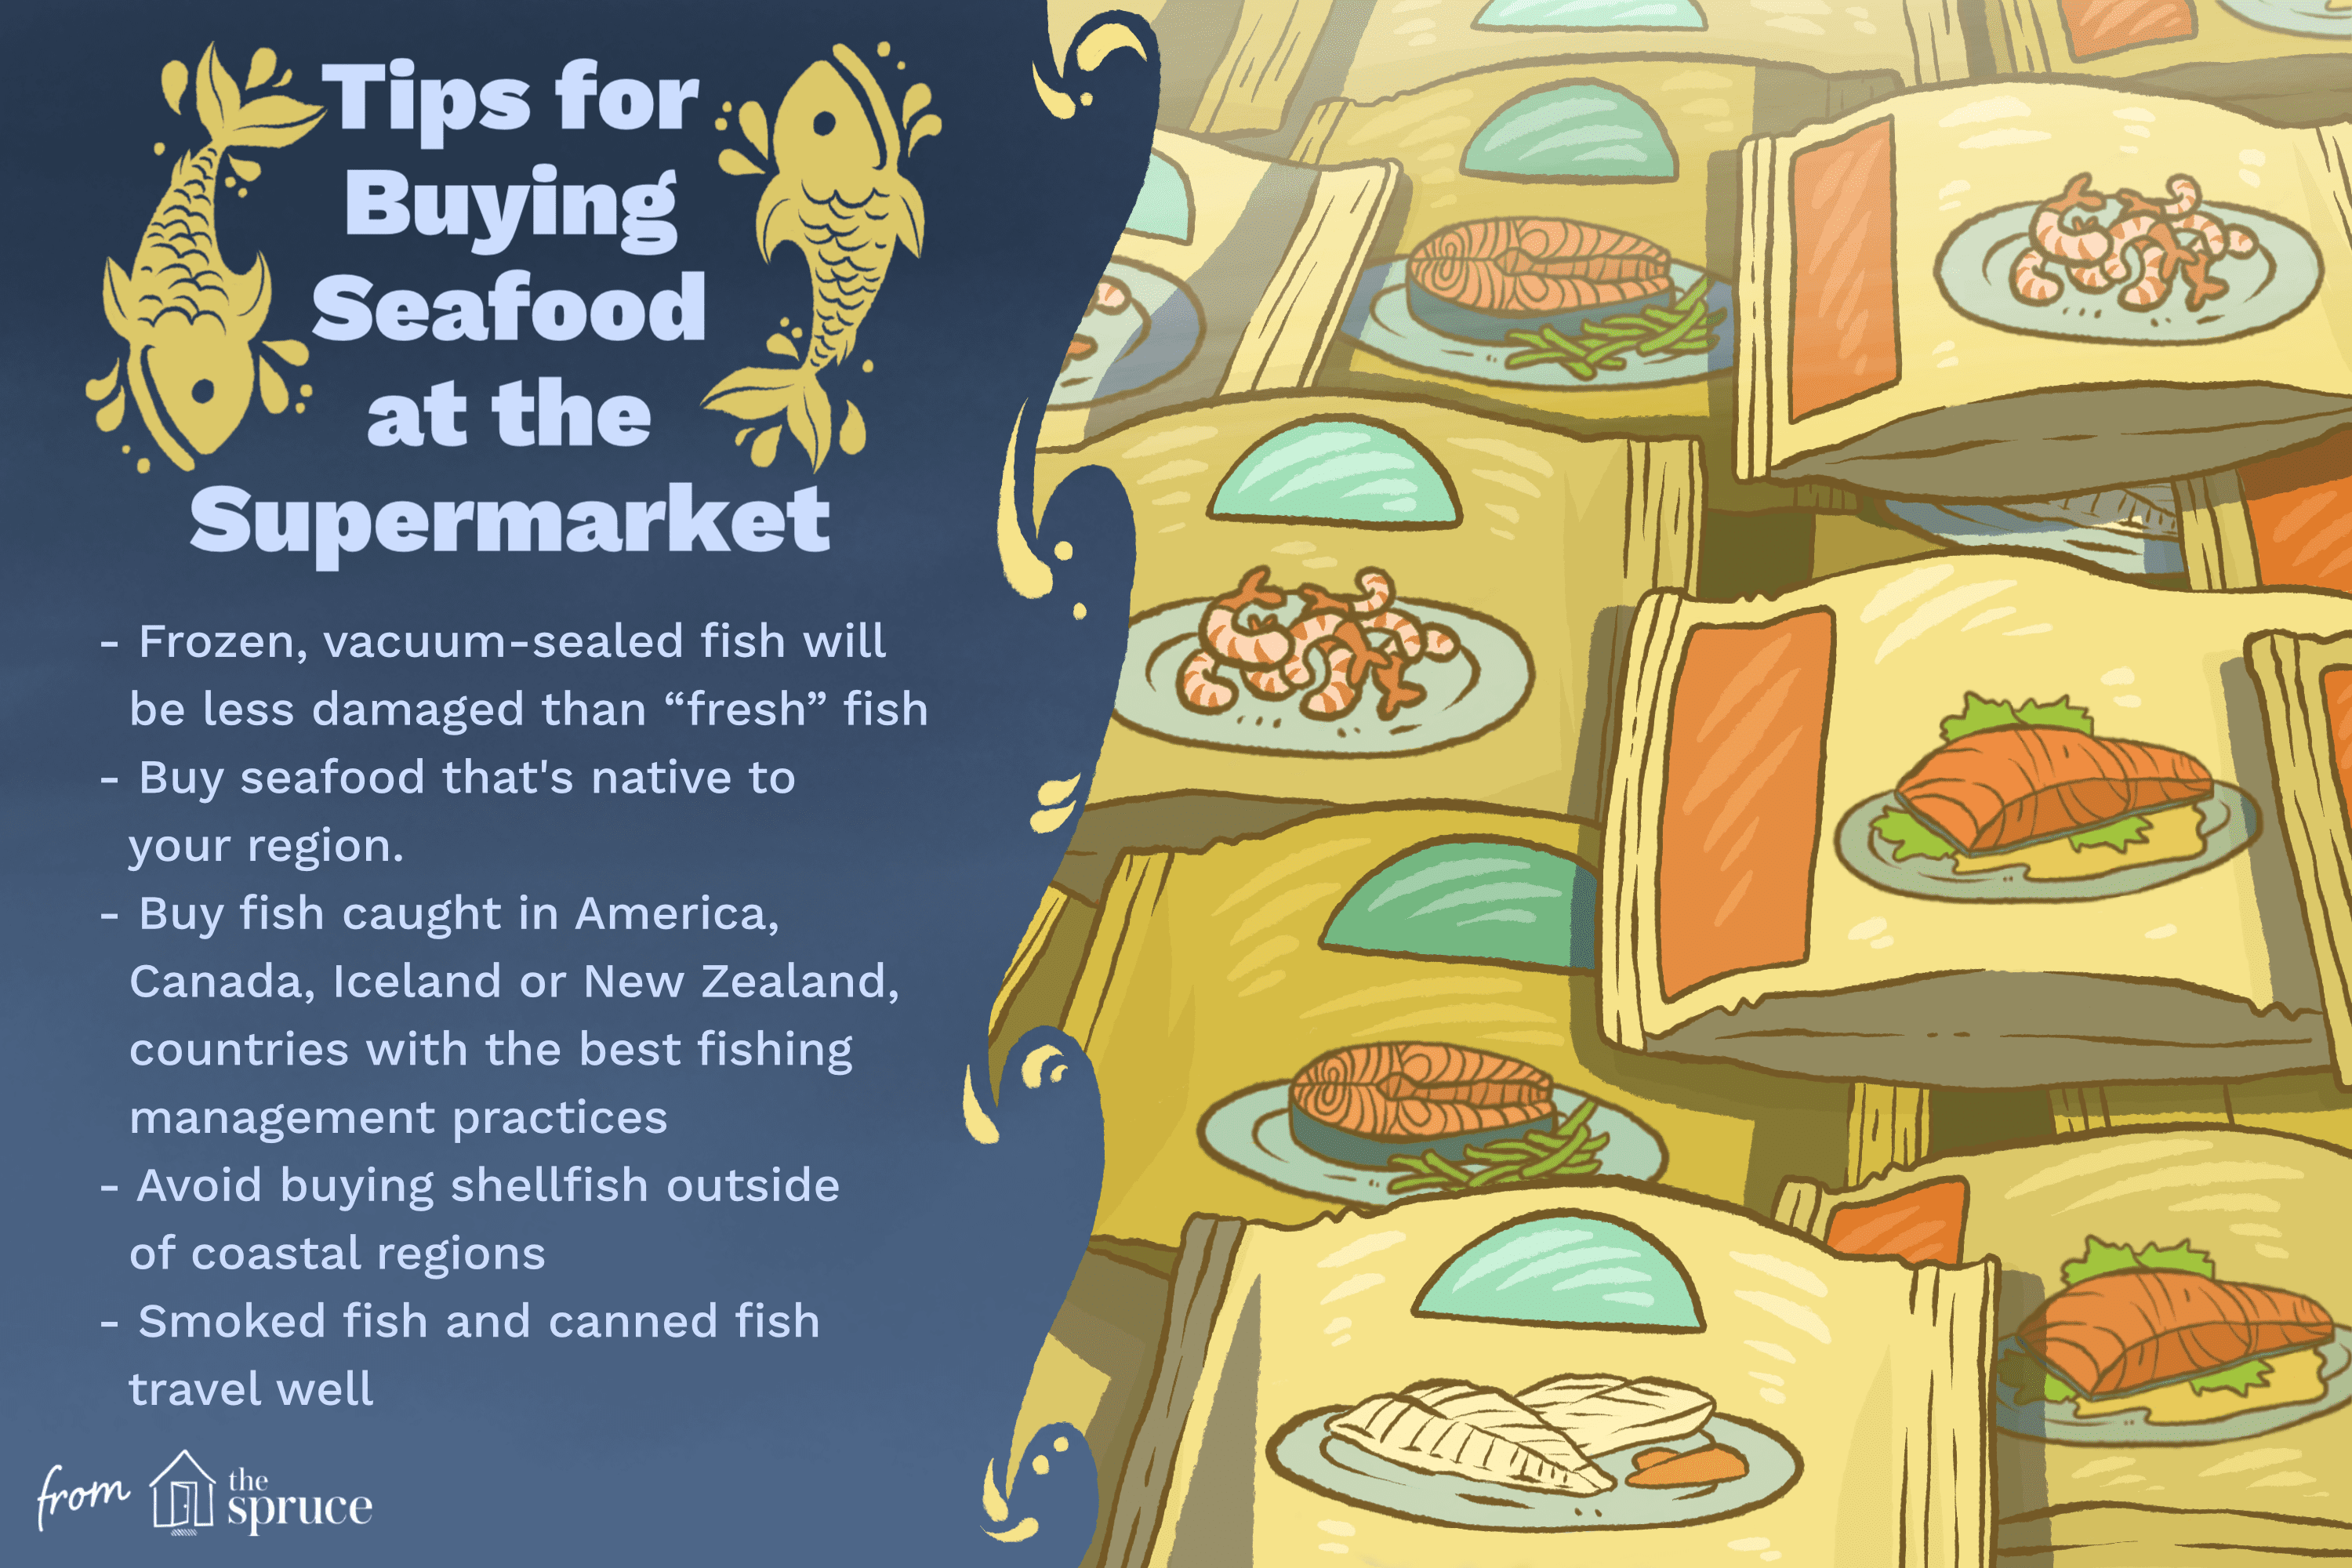 Buying Seafood at a Supermarket - How to Choose Quality